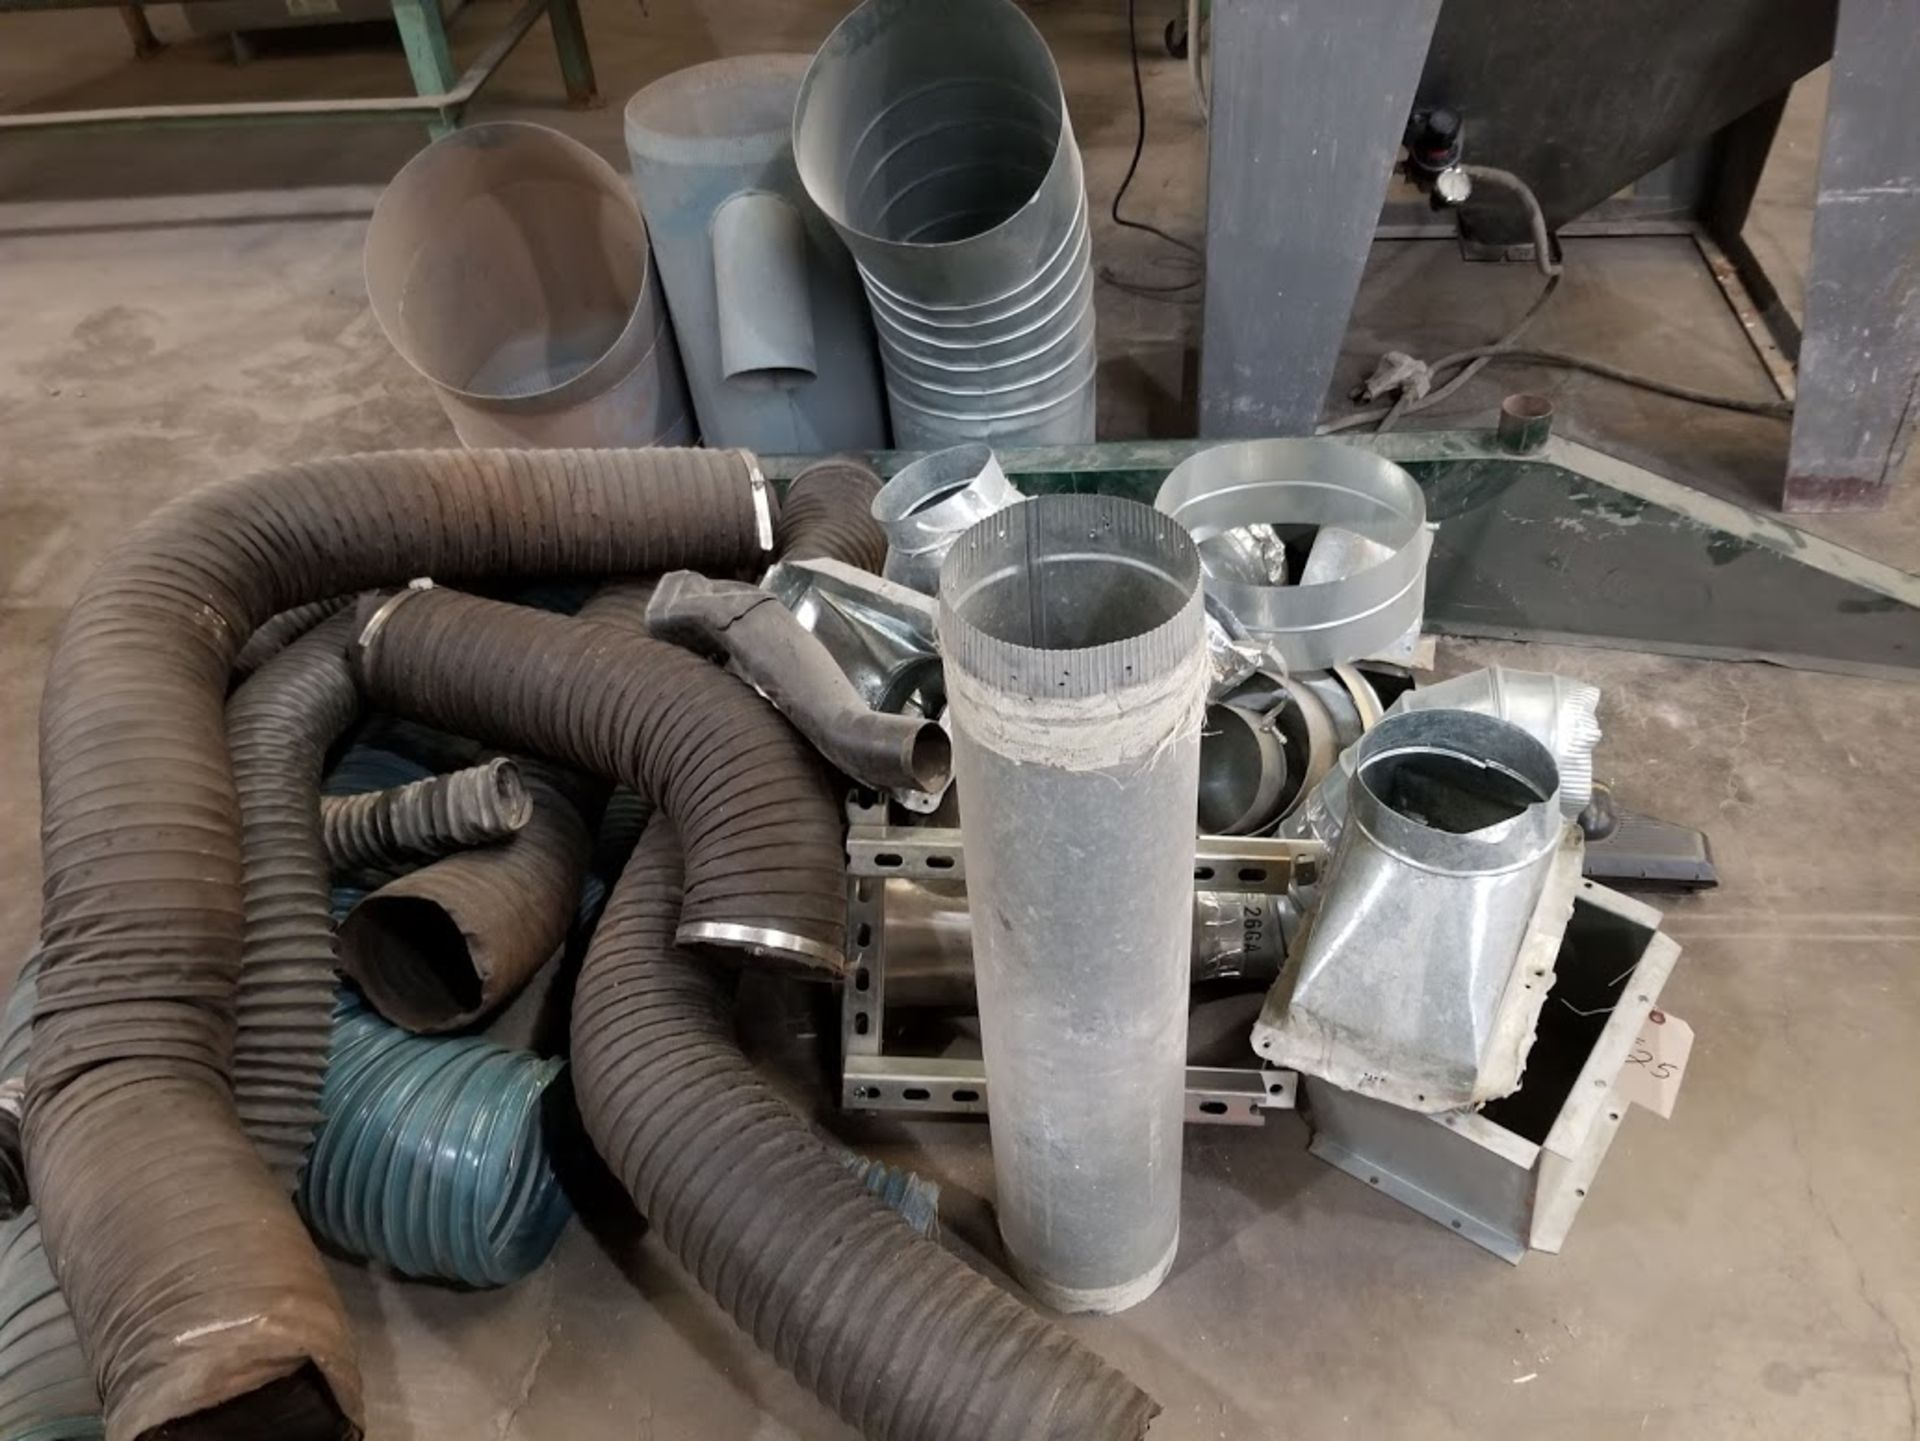 Misc Steel Dust Collecting Fittings & Hoses, Elbows, Blast Gates, Y's, & Reducers - Image 4 of 5